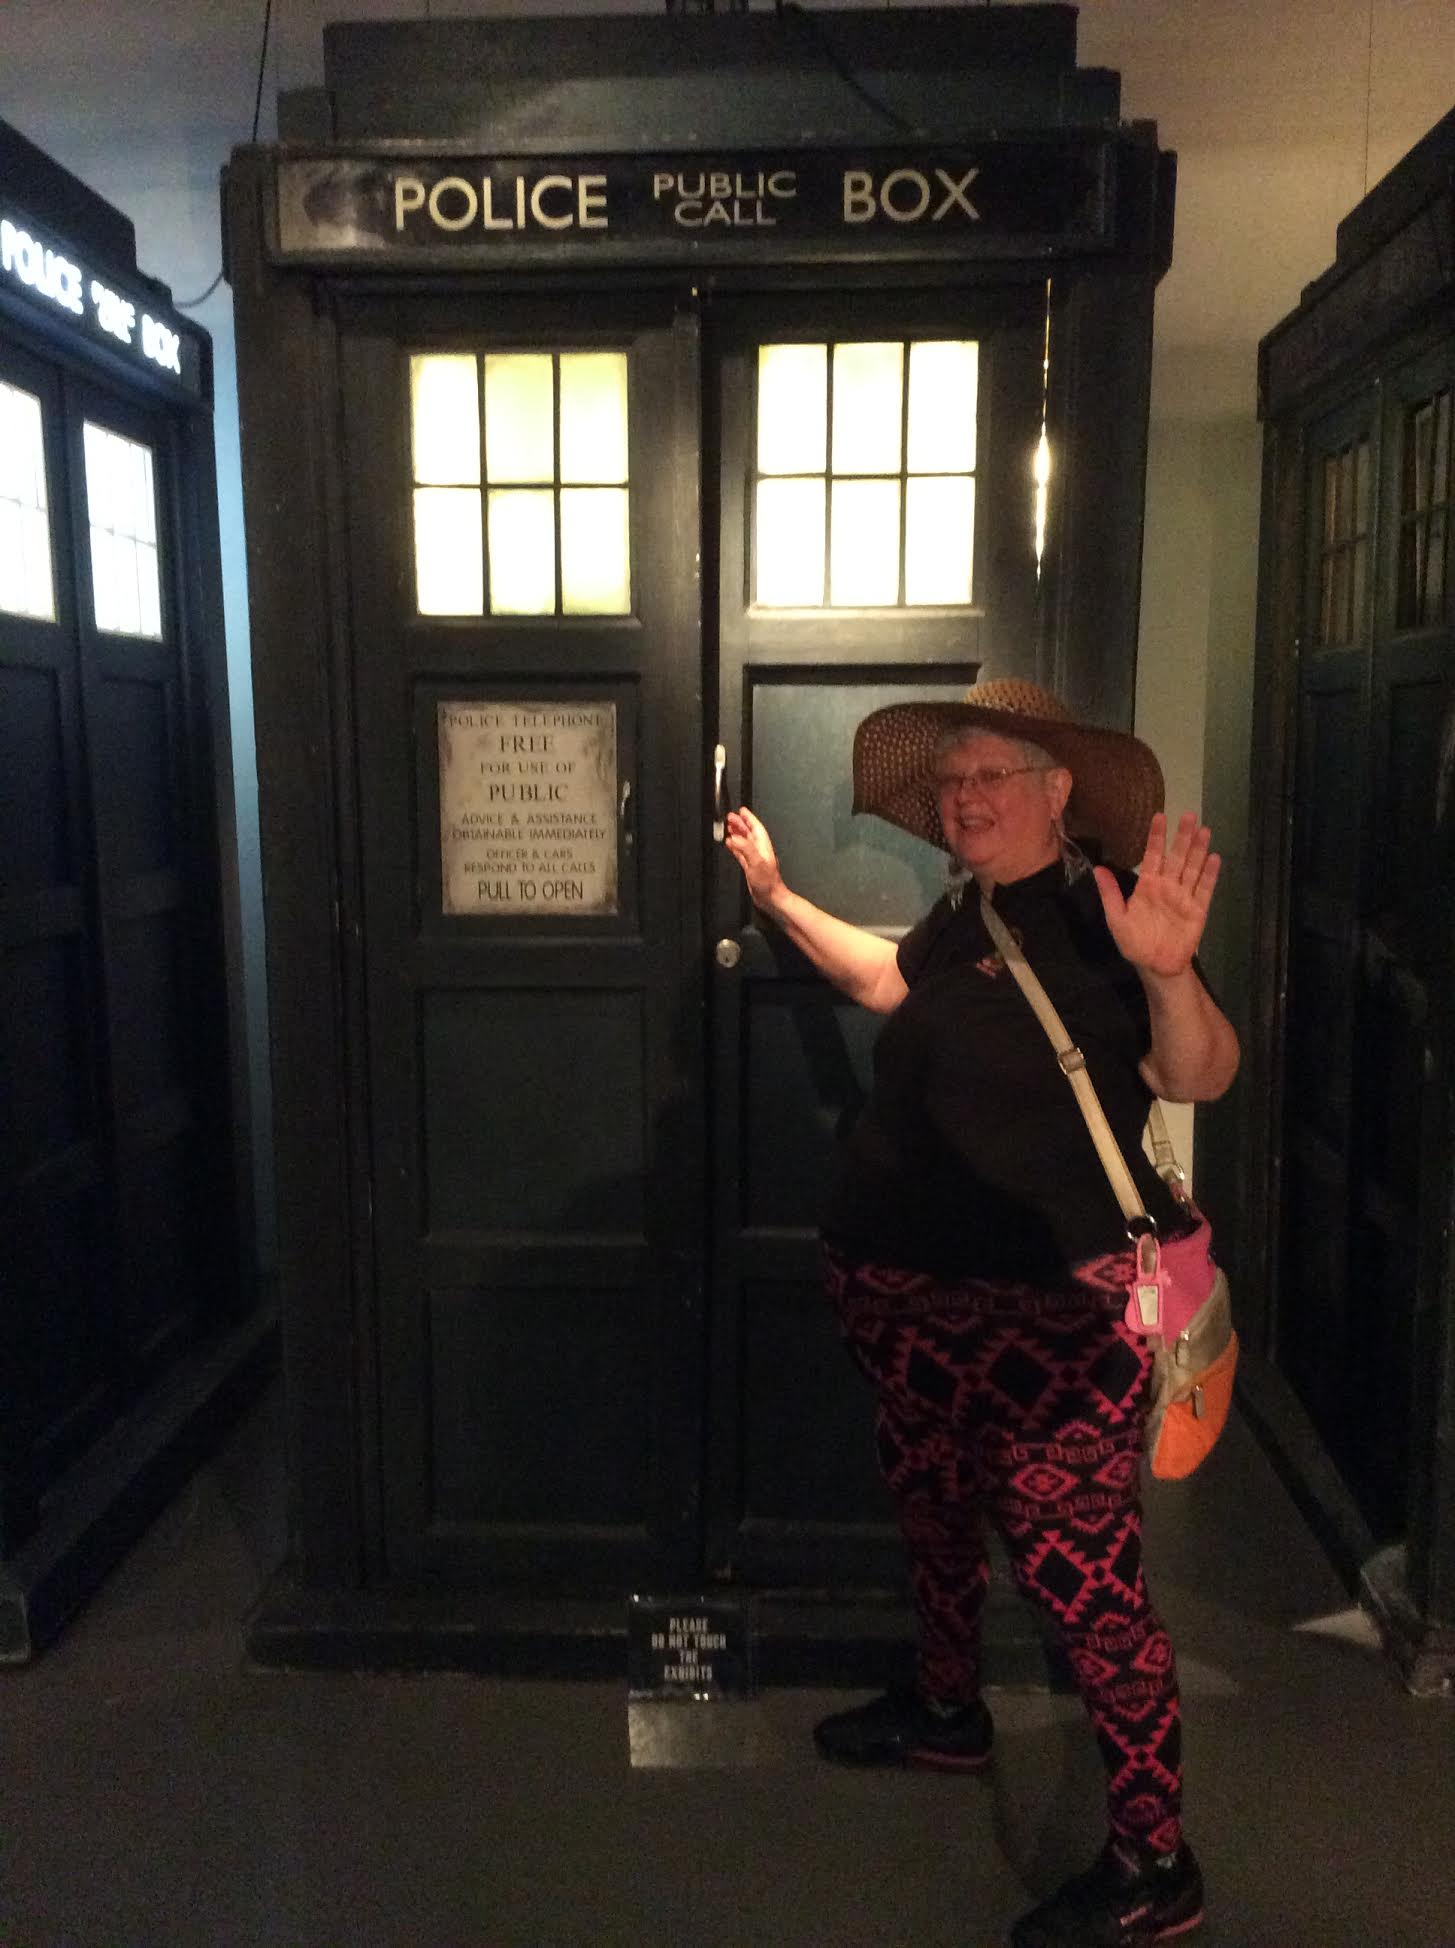 ' ' from the web at 'https://nostupidwikianswers.files.wordpress.com/2015/05/lindy-at-the-dr-who-museum.jpg'